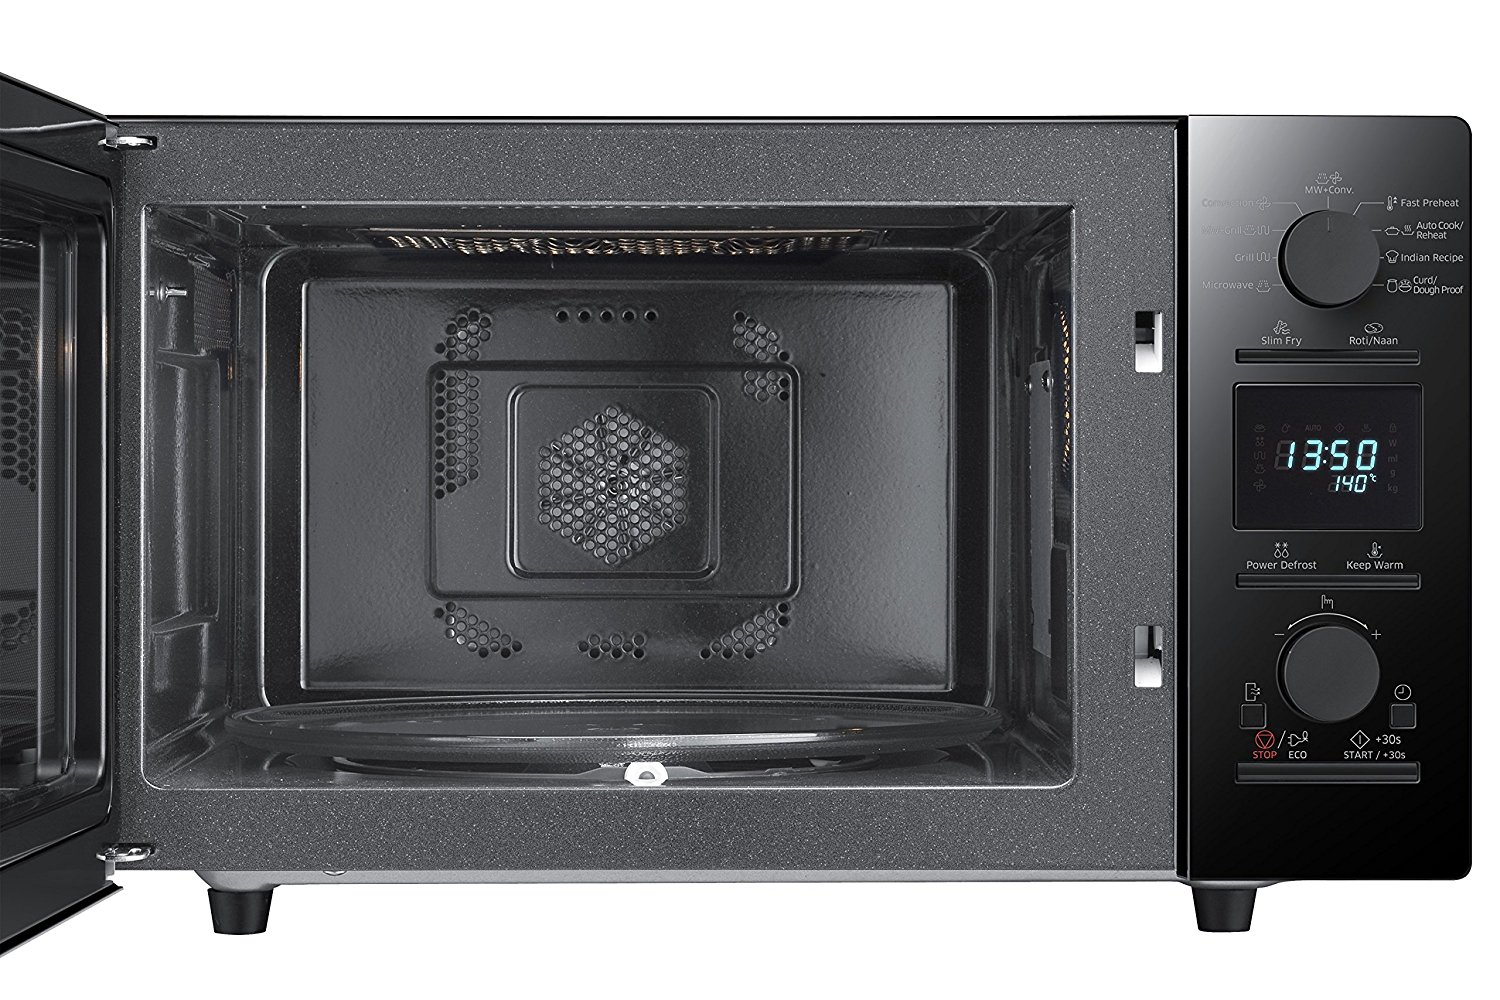 Samsung Convection Microwave Black Oven